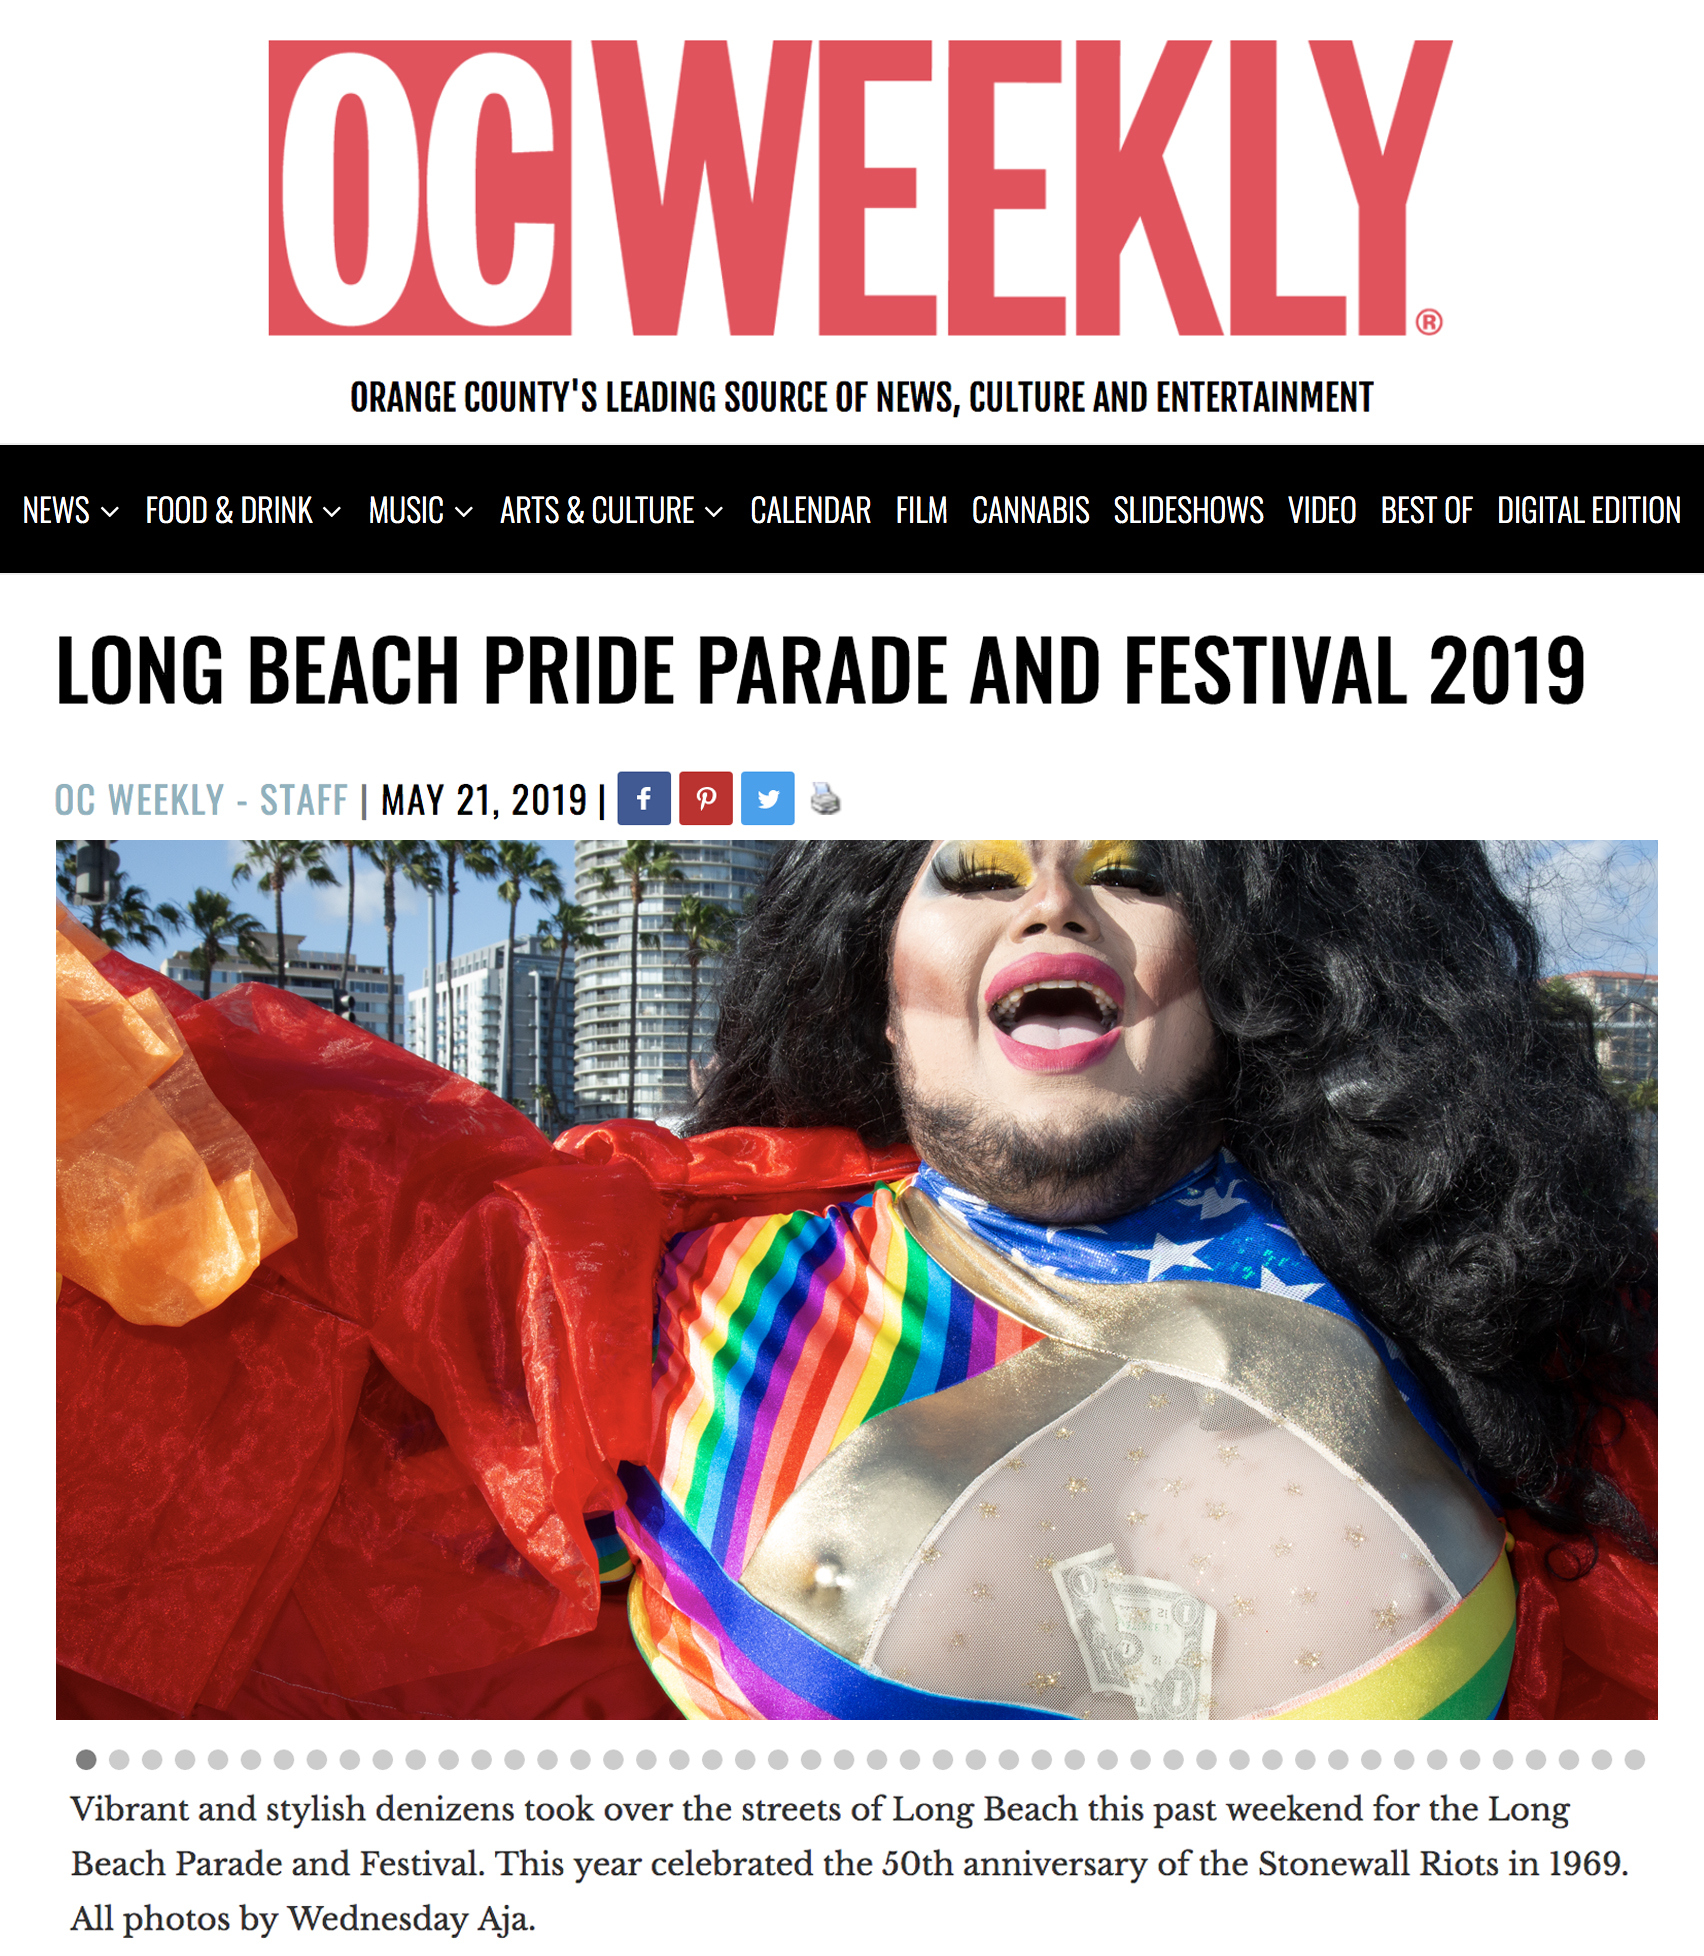 OCW_LB_PRIDE_WEDNESDAY_AJA_2019.jpg